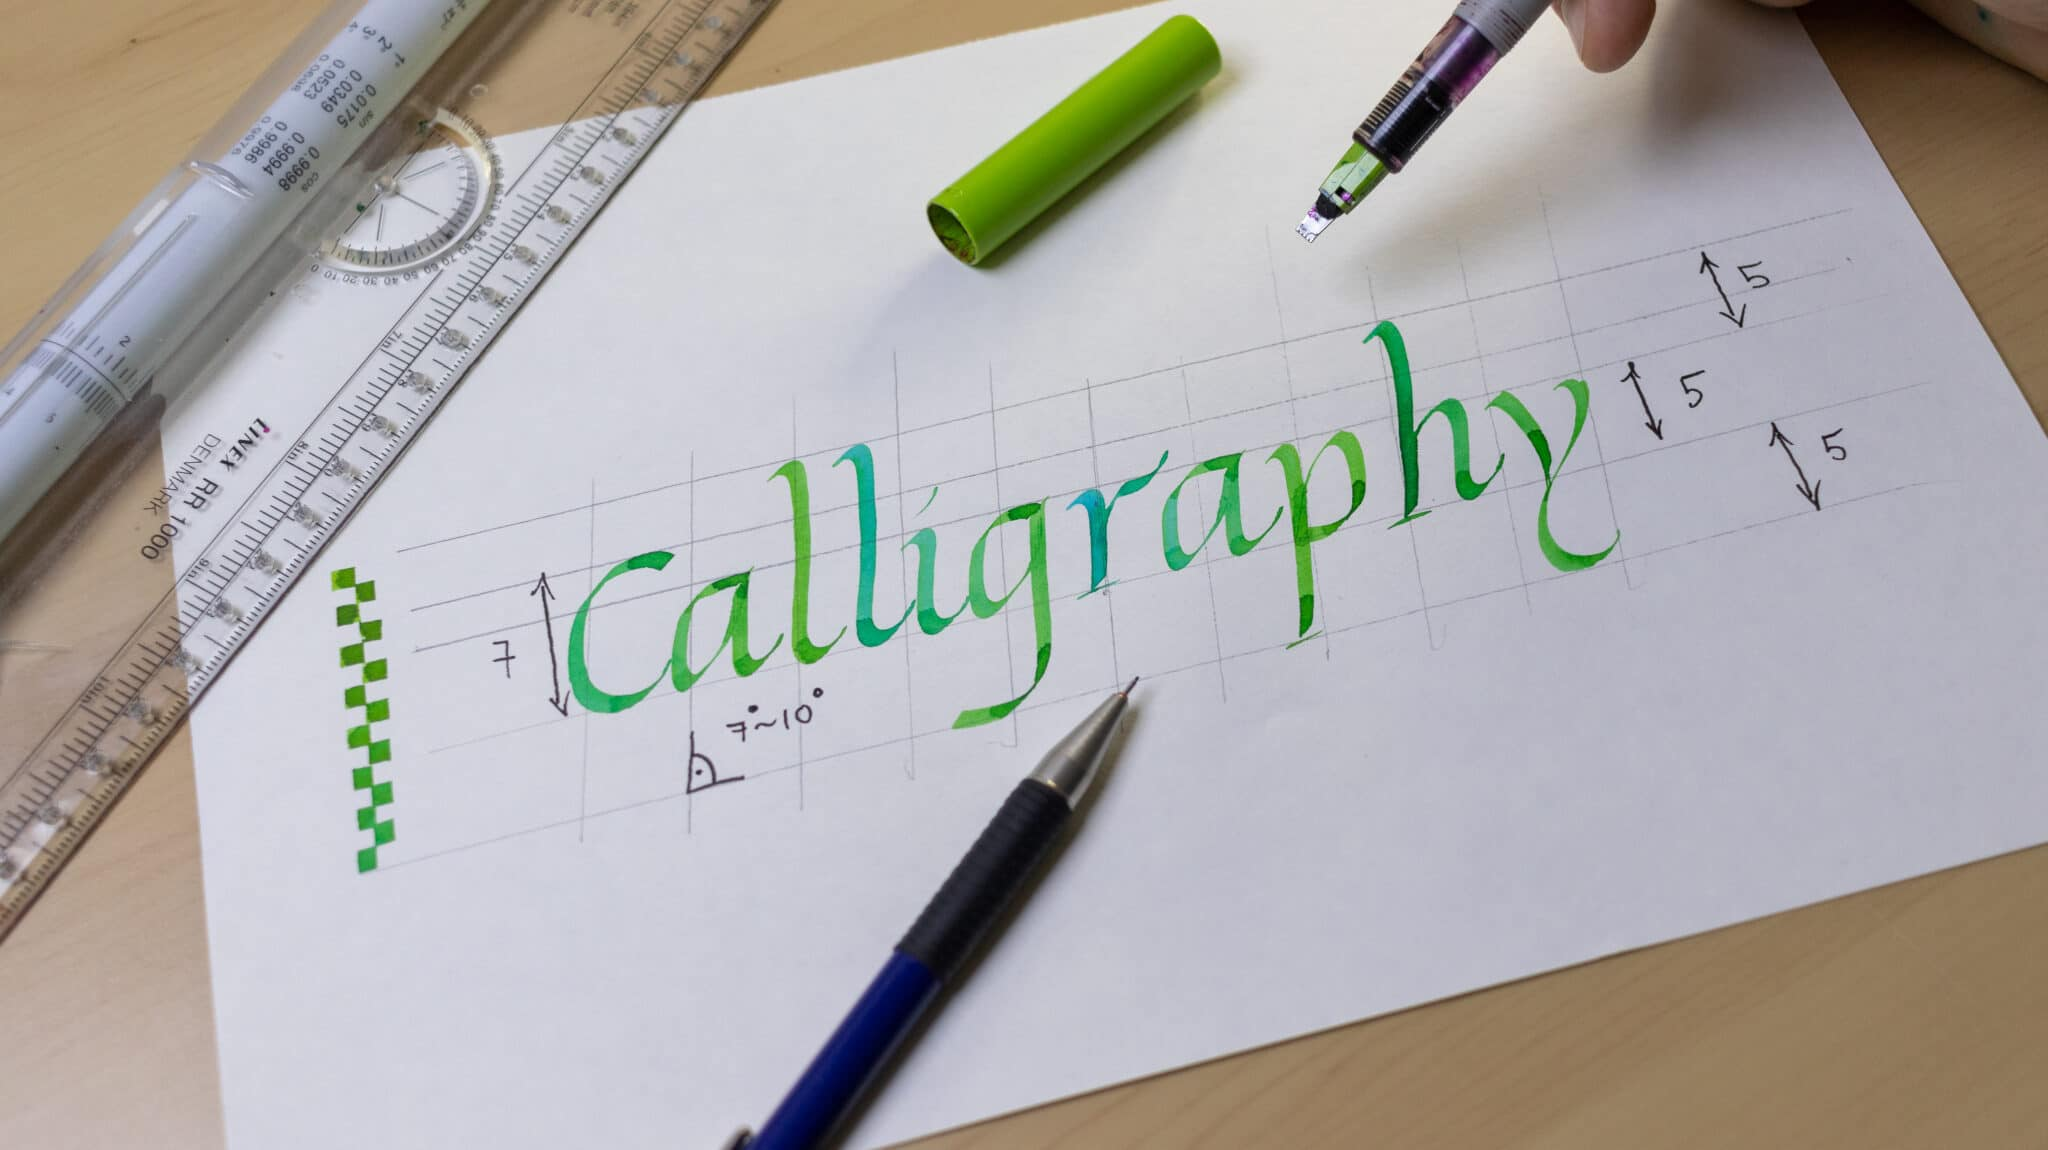 How To Make Calligraphy Guidelines Image 13 - Lettering Daily